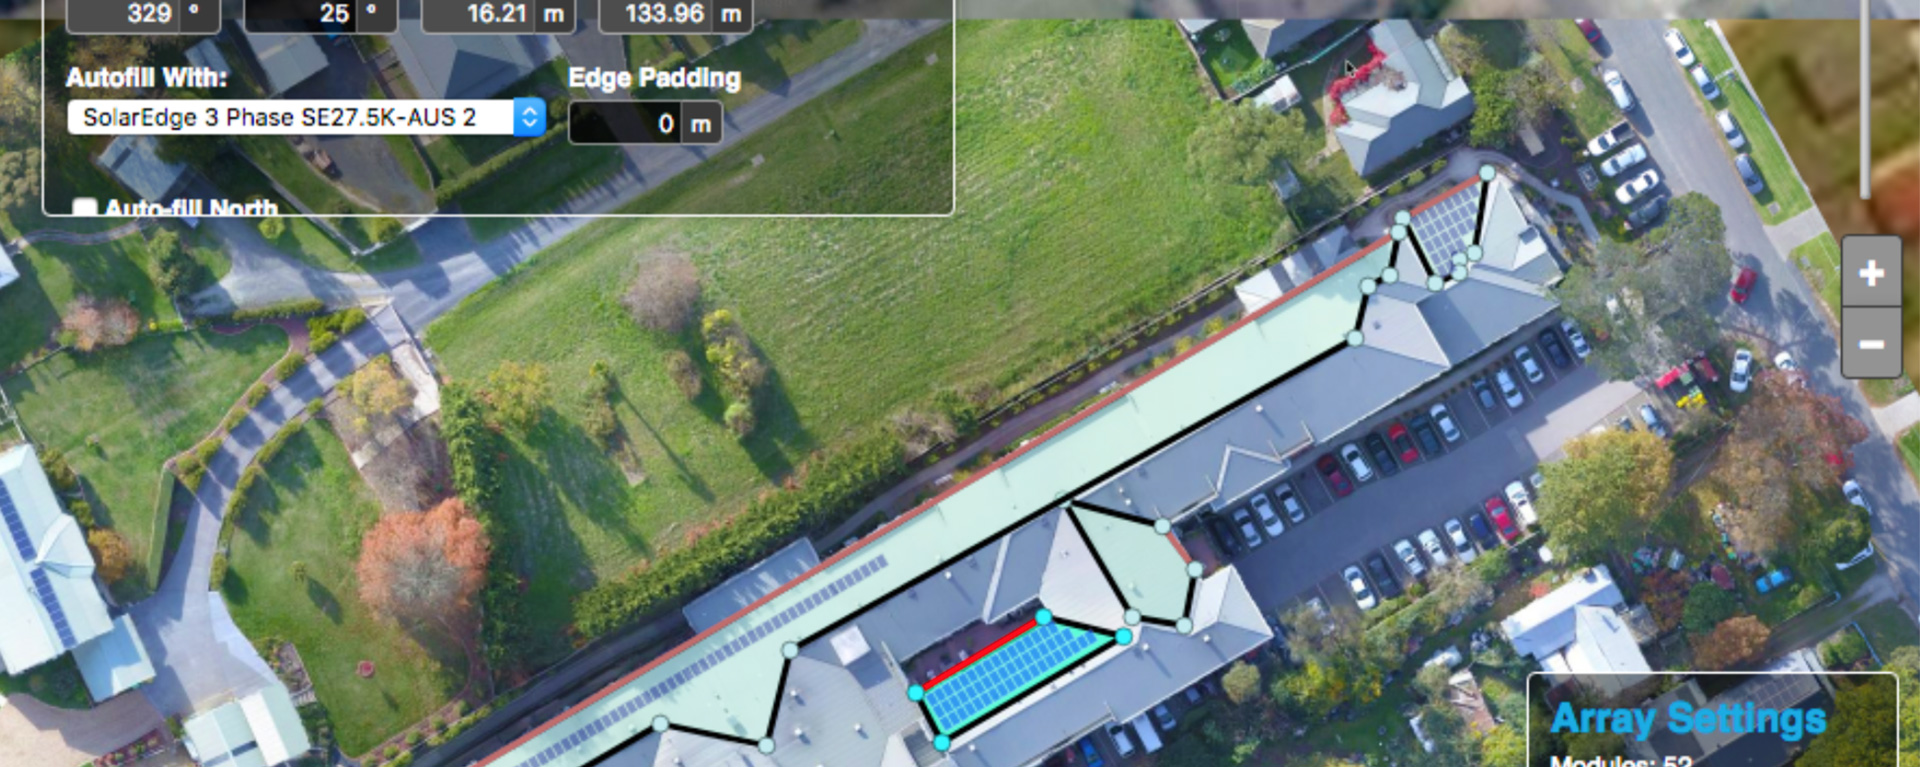 Solar design with drone roof imagery